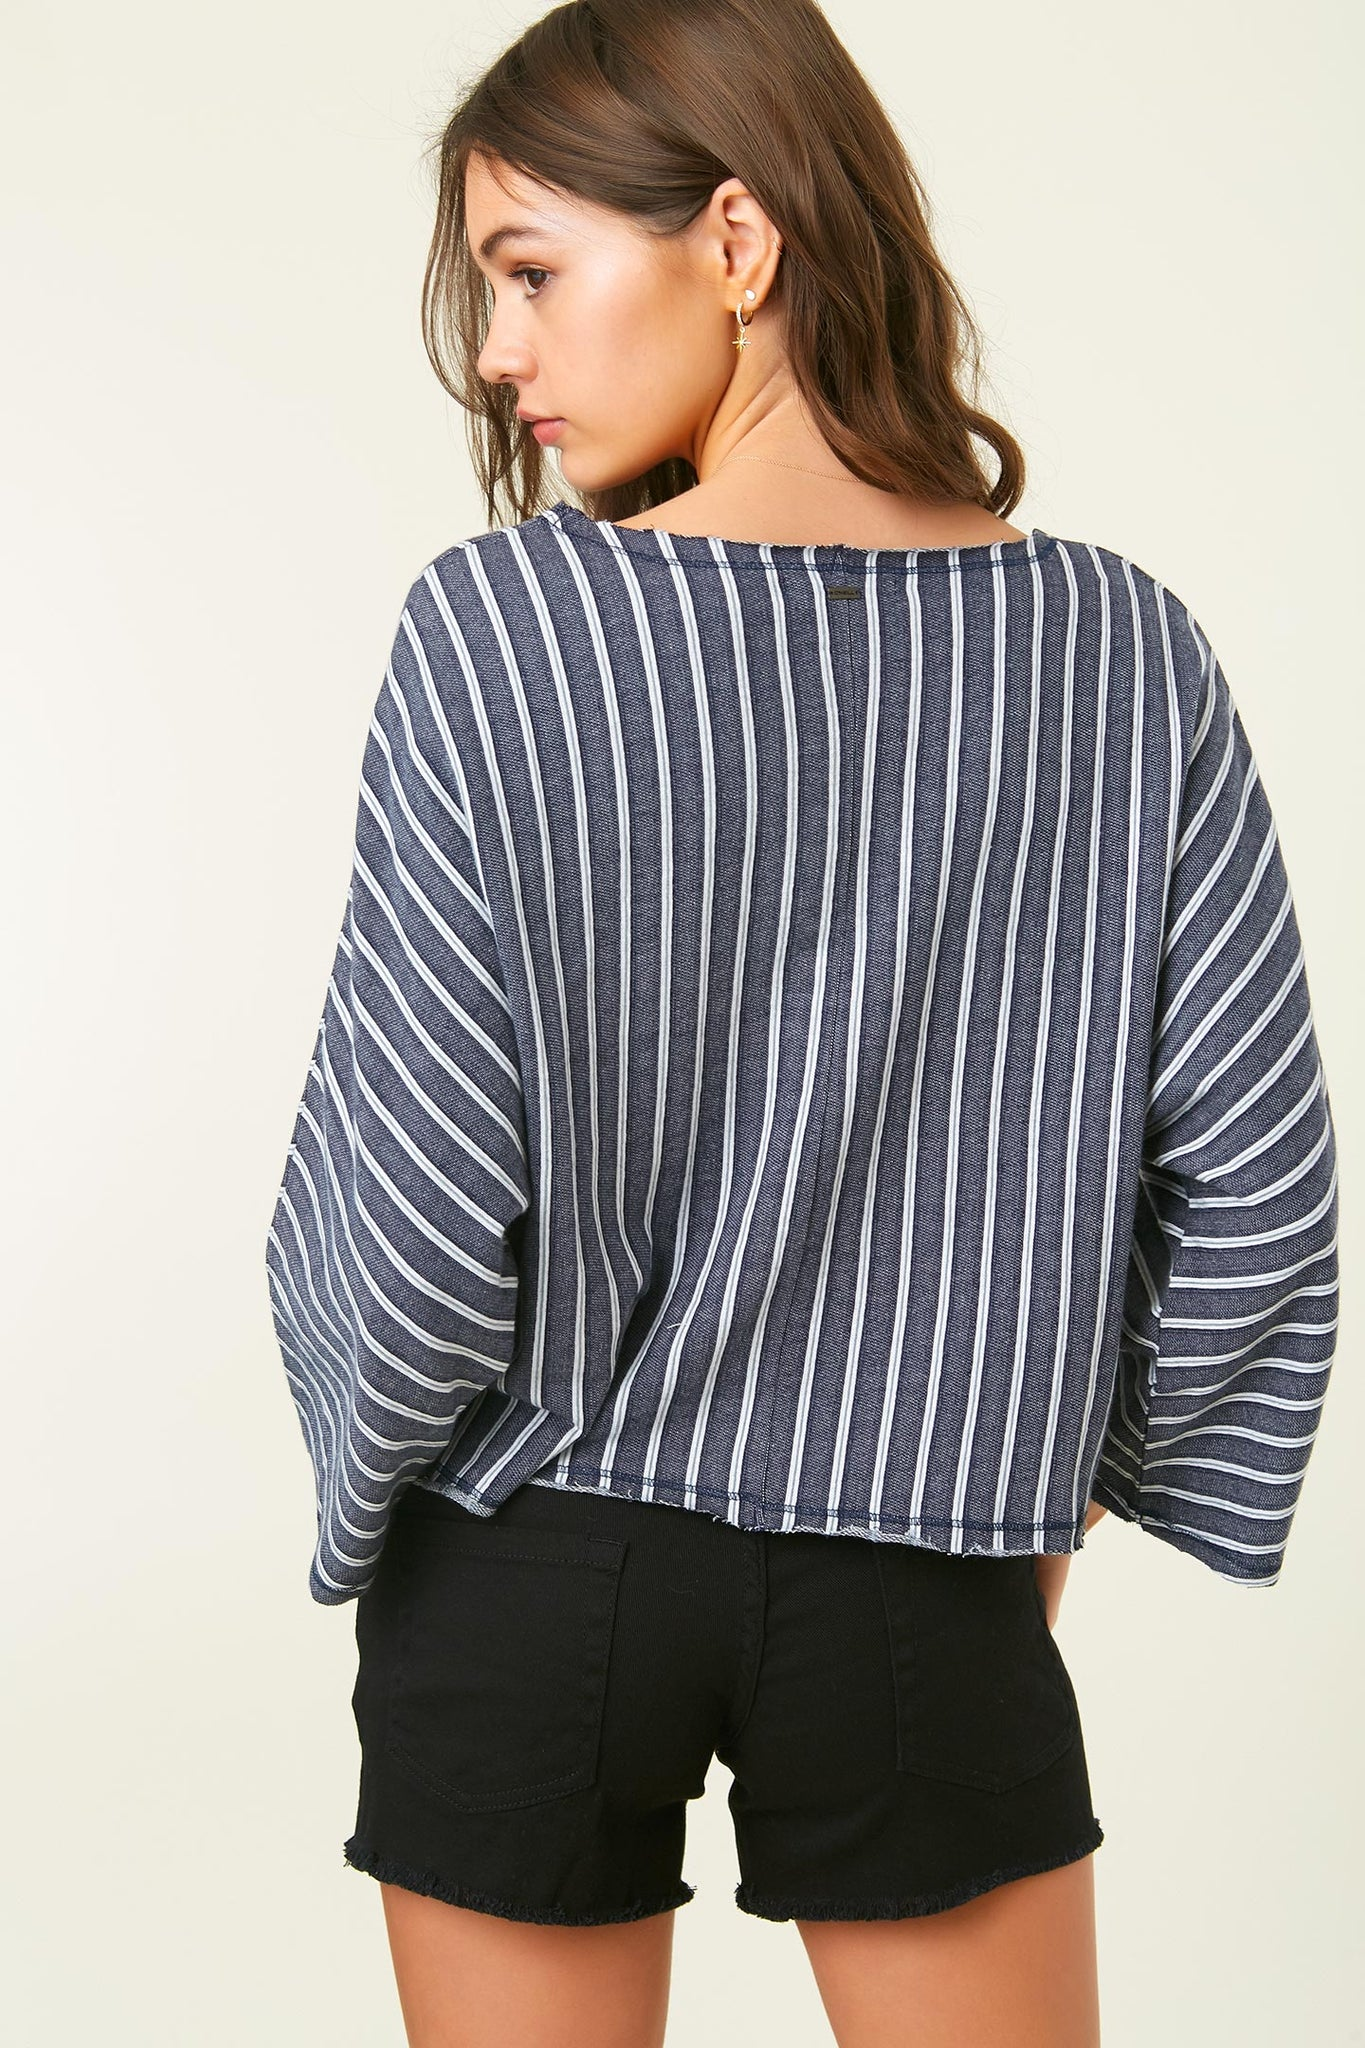 Madeleine Top | O'Neill Clothing USA